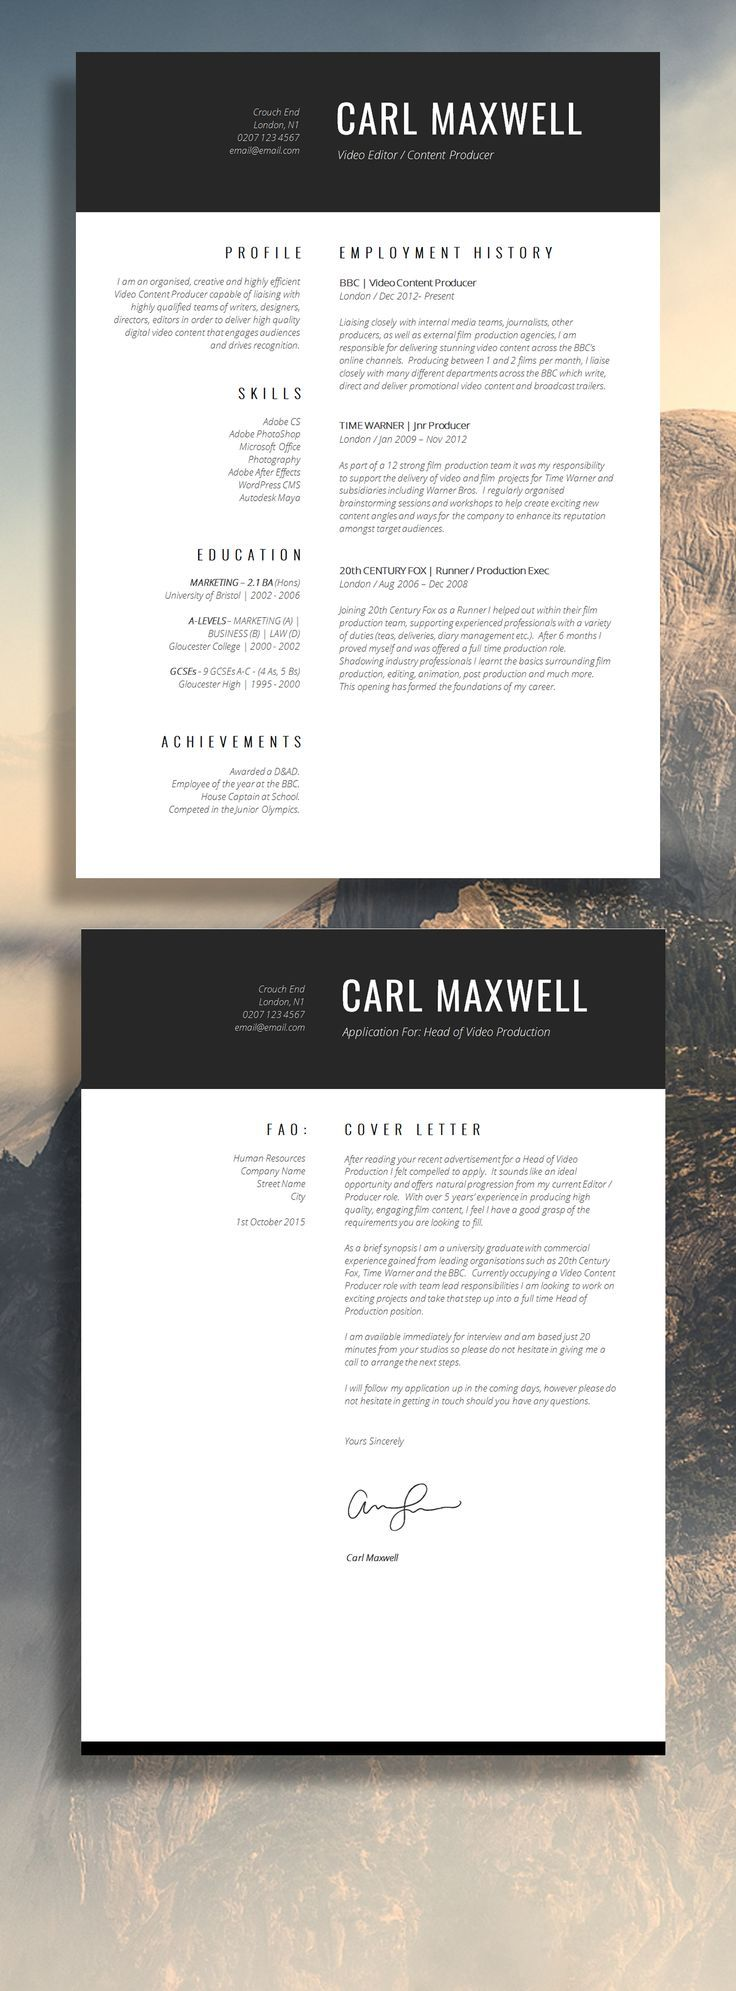 professional resume template cv template resume advice cover letter word mac or pc instant digital download mayfair